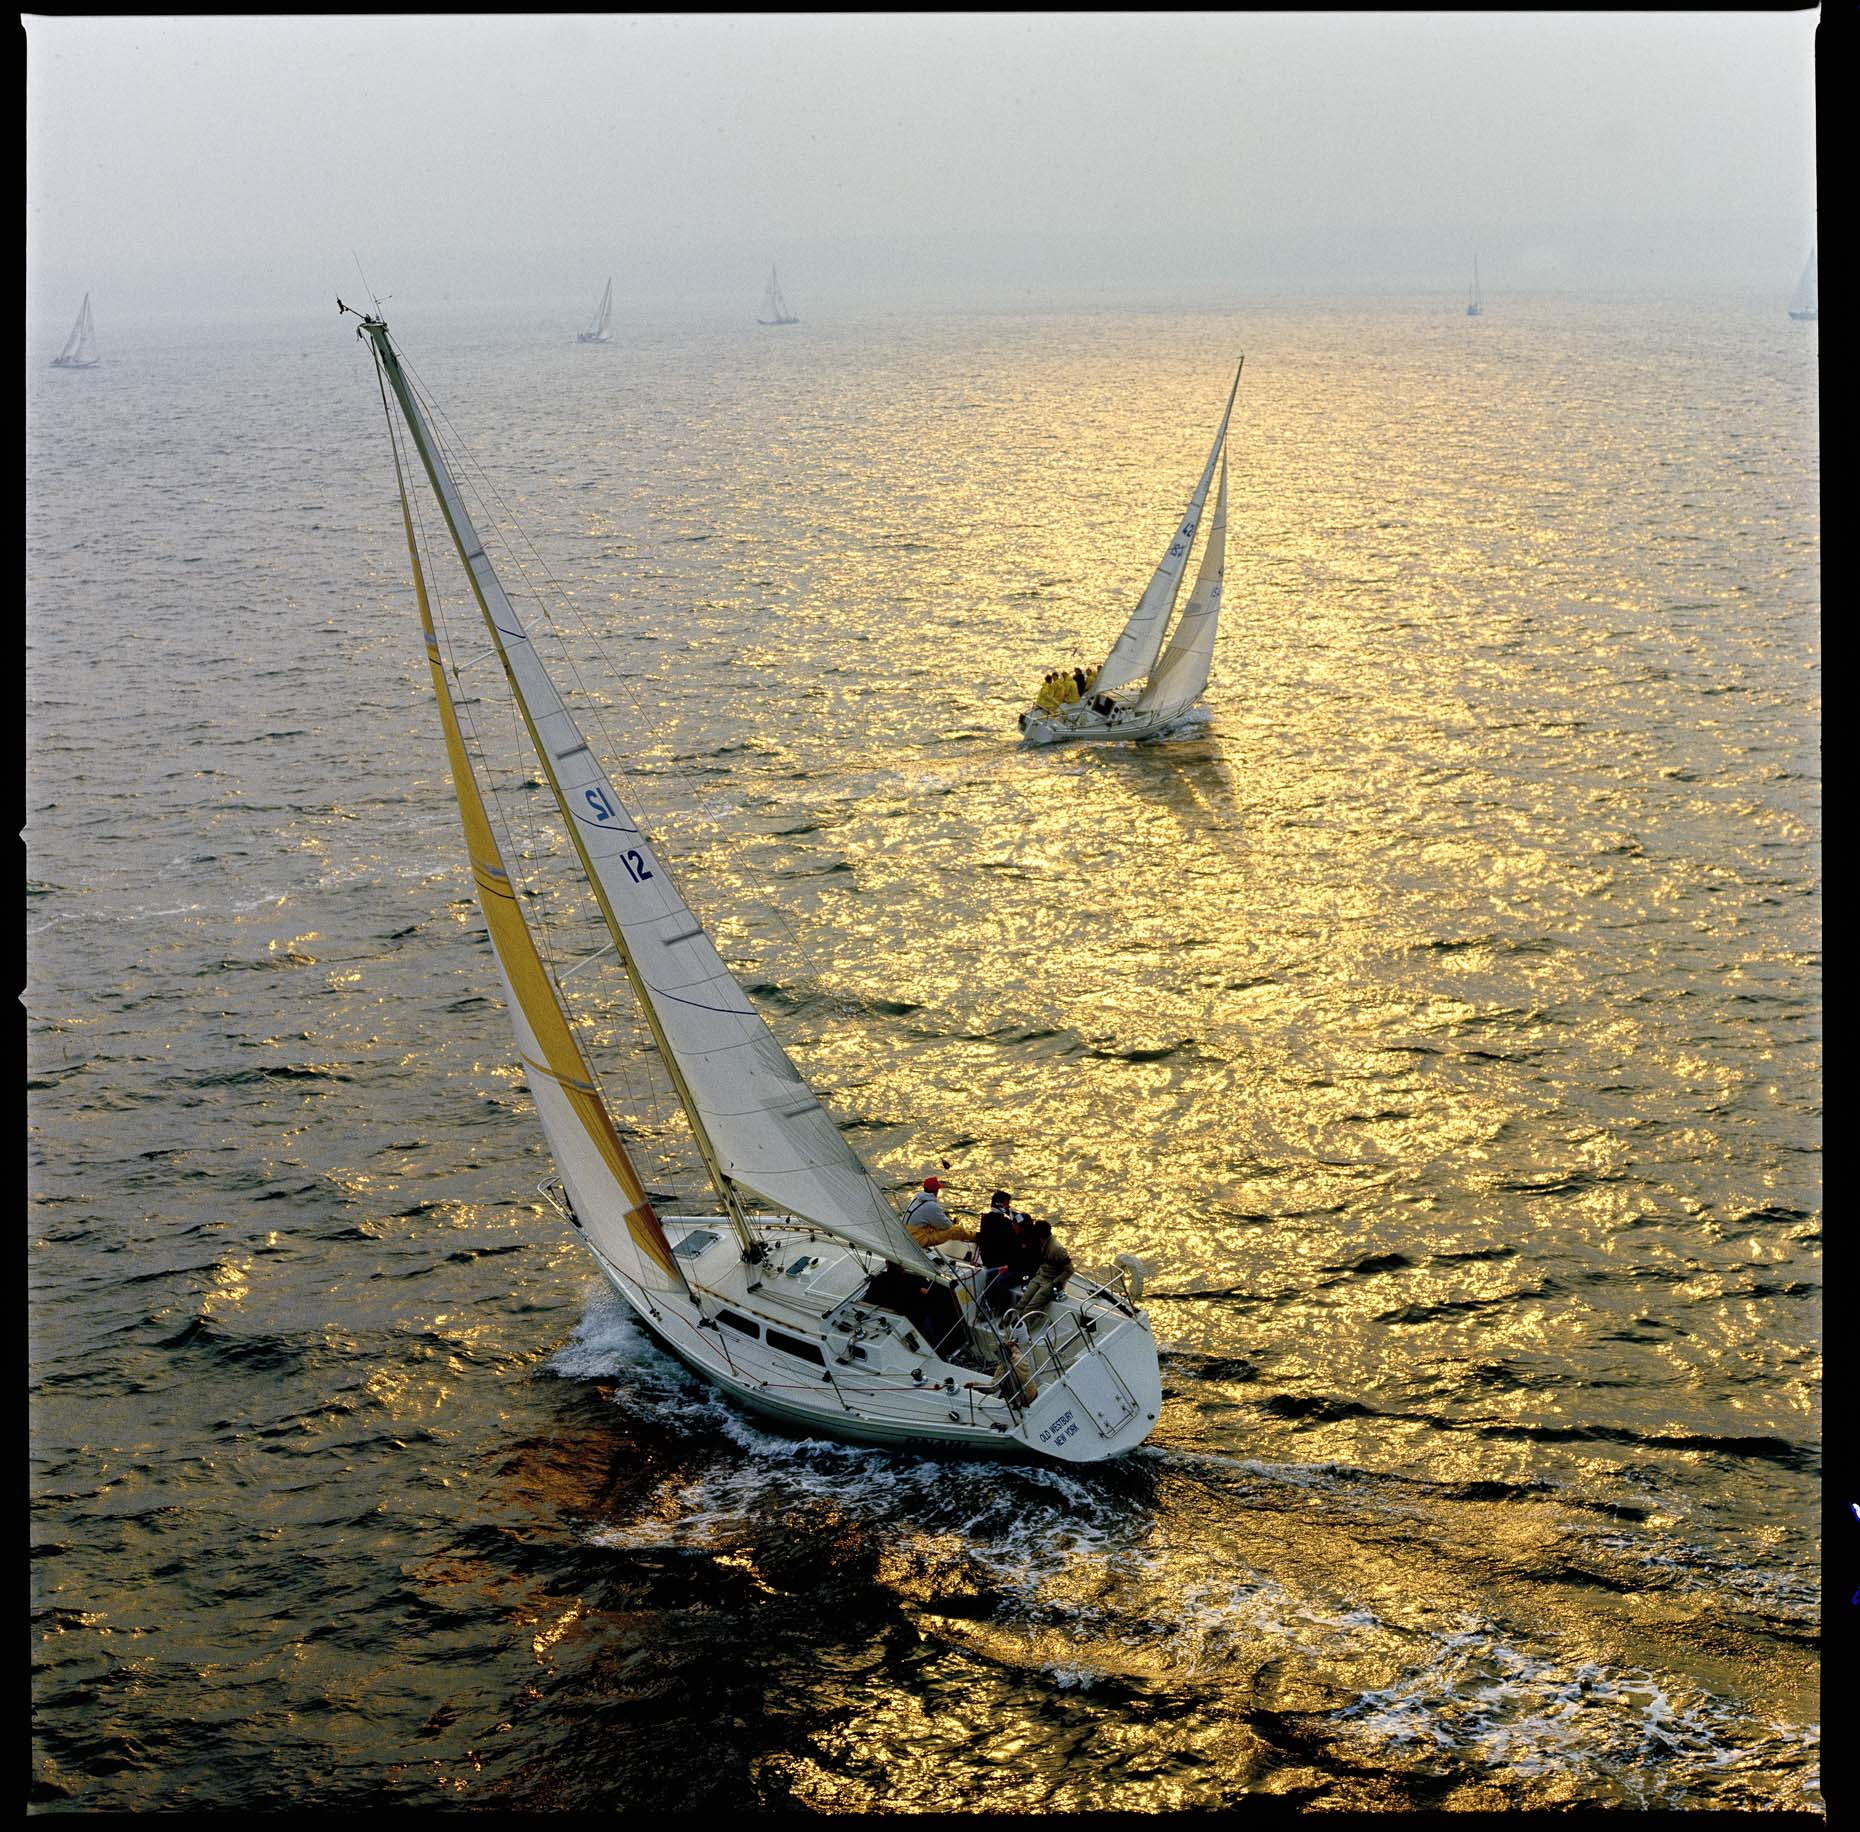 Aerial photography of yachts and ships by Stefen Turner